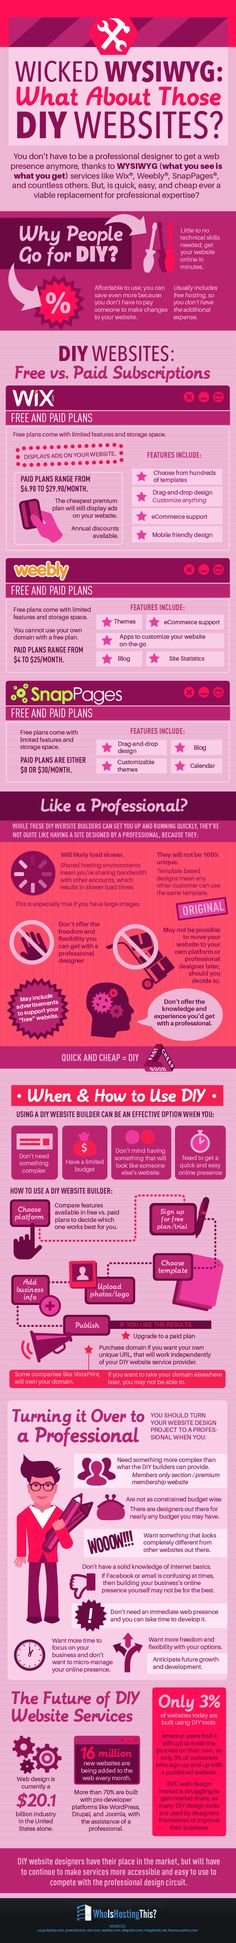 Wicked WYSIWYG, what about those DIY Websites #website #web #infographic #webdesigner #wix #weebly #snappages